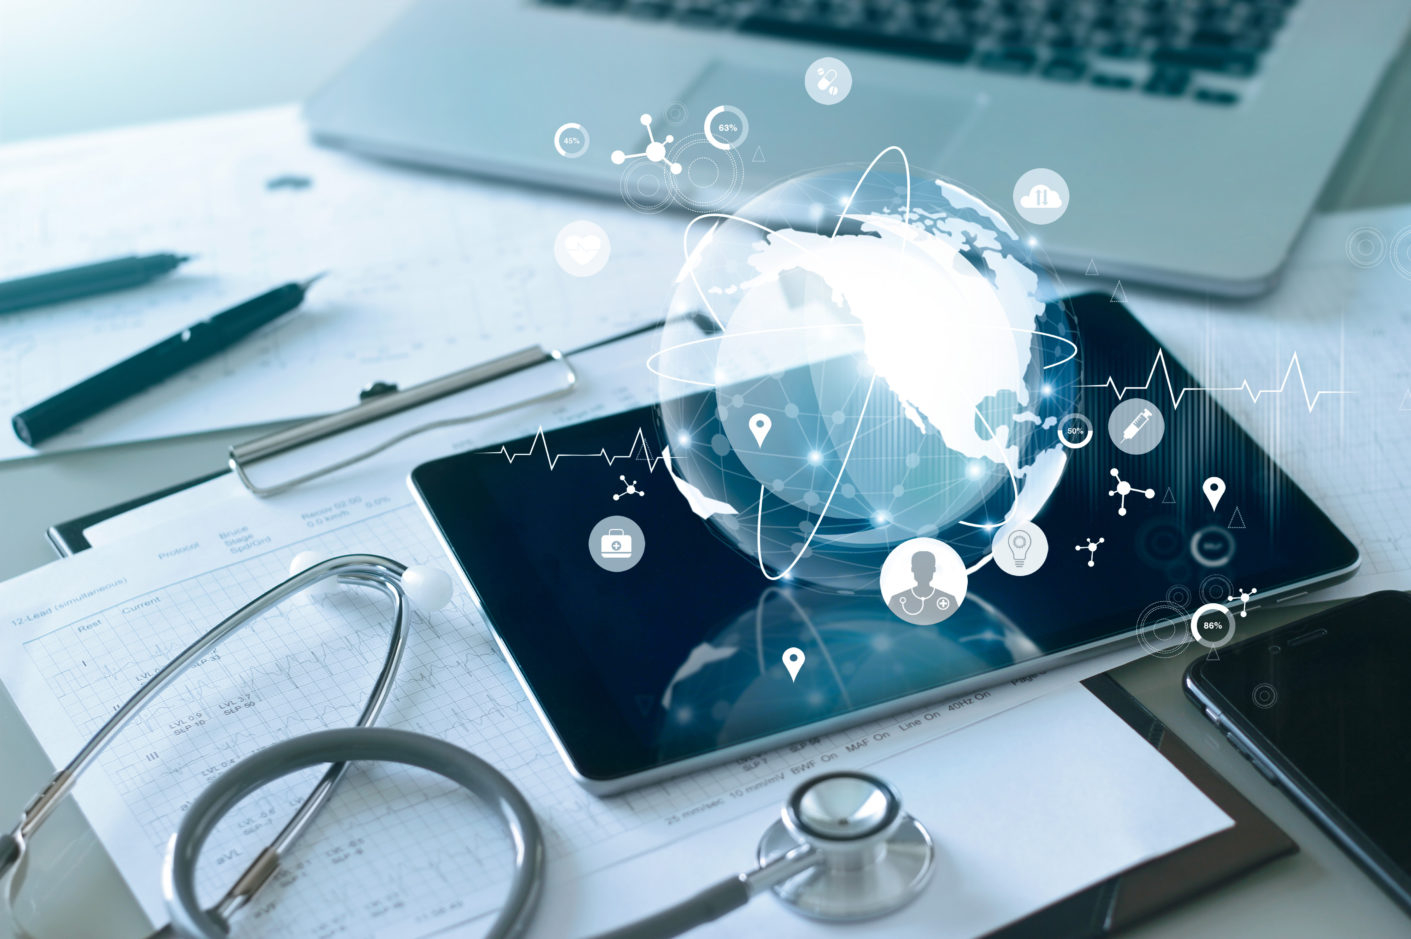 Medical global networking and healthcare global network connection on tablet, Medical technology.